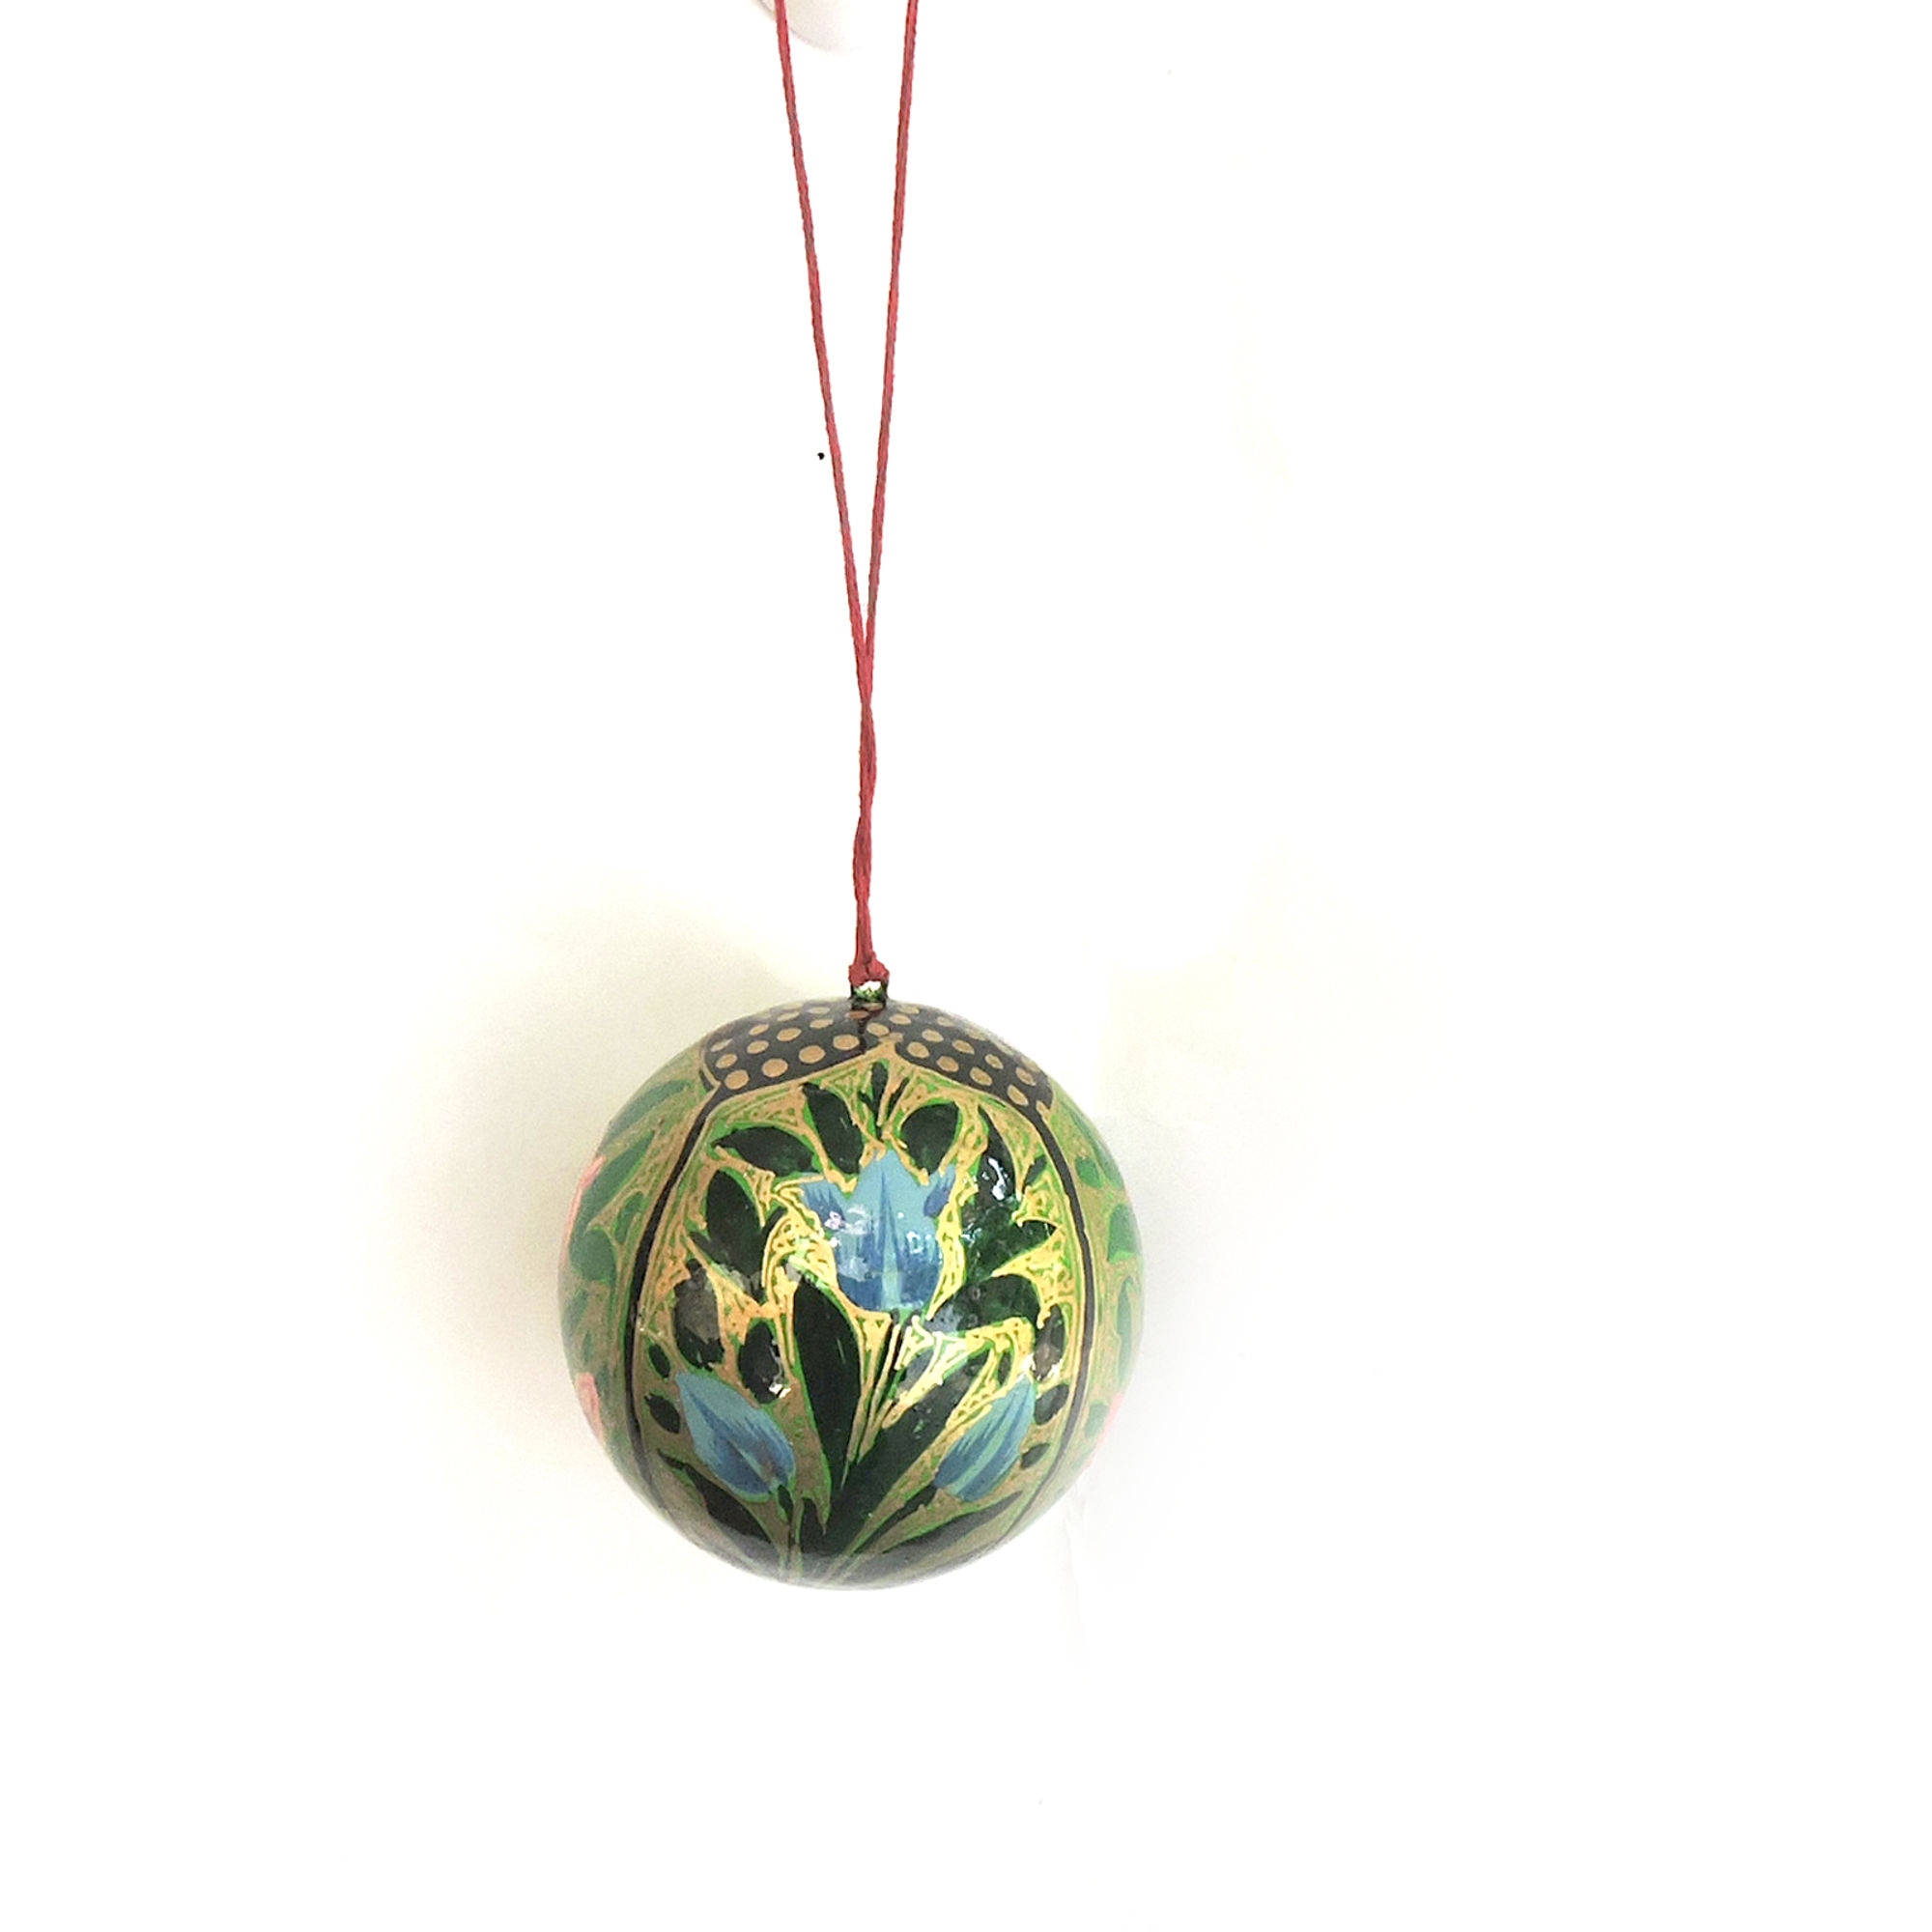 Kashmiri Art Paper Mache Hanging Ball Decor Item Multicolor Small